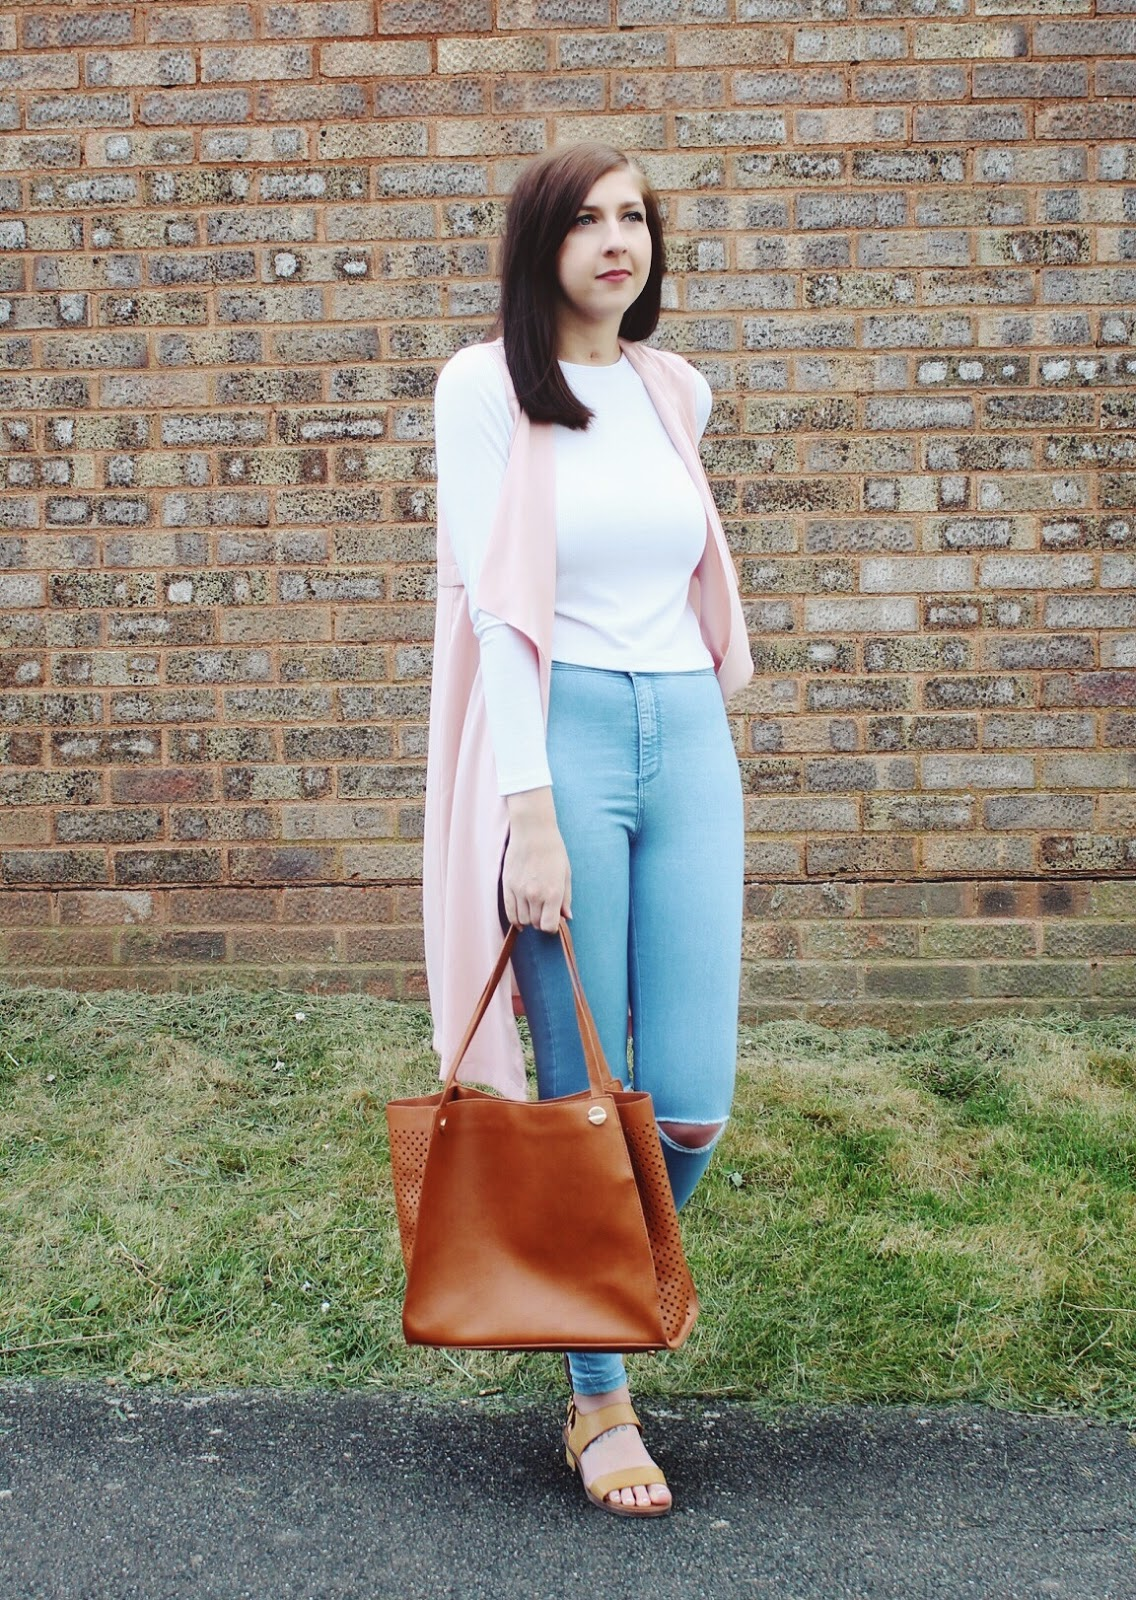 asseenonme, fbloggers, fblogger, halcyonvelvet, wiw, whatimwearing, lotd, lookoftheday, ootd, outfitoftheday, primark, summerlook, croptop, rippedskinnyjeans, pinktailoring, fashion, fashionbloggers, fashionblogger